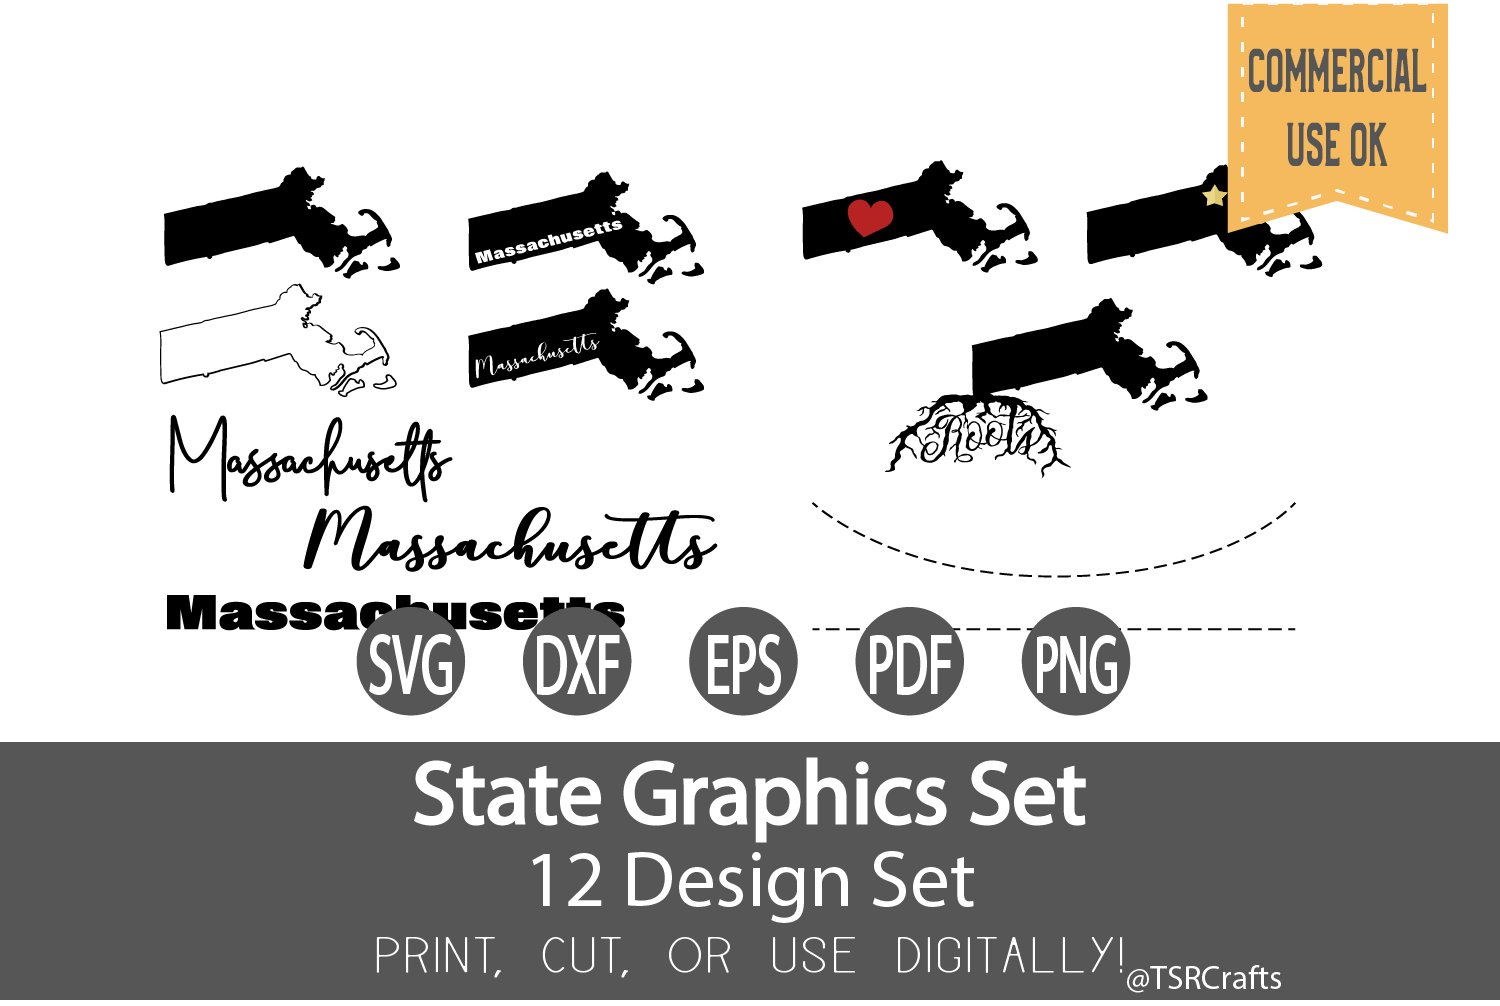 Massachusetts State Graphics Set - Clip Art and Digital Cut example image 1